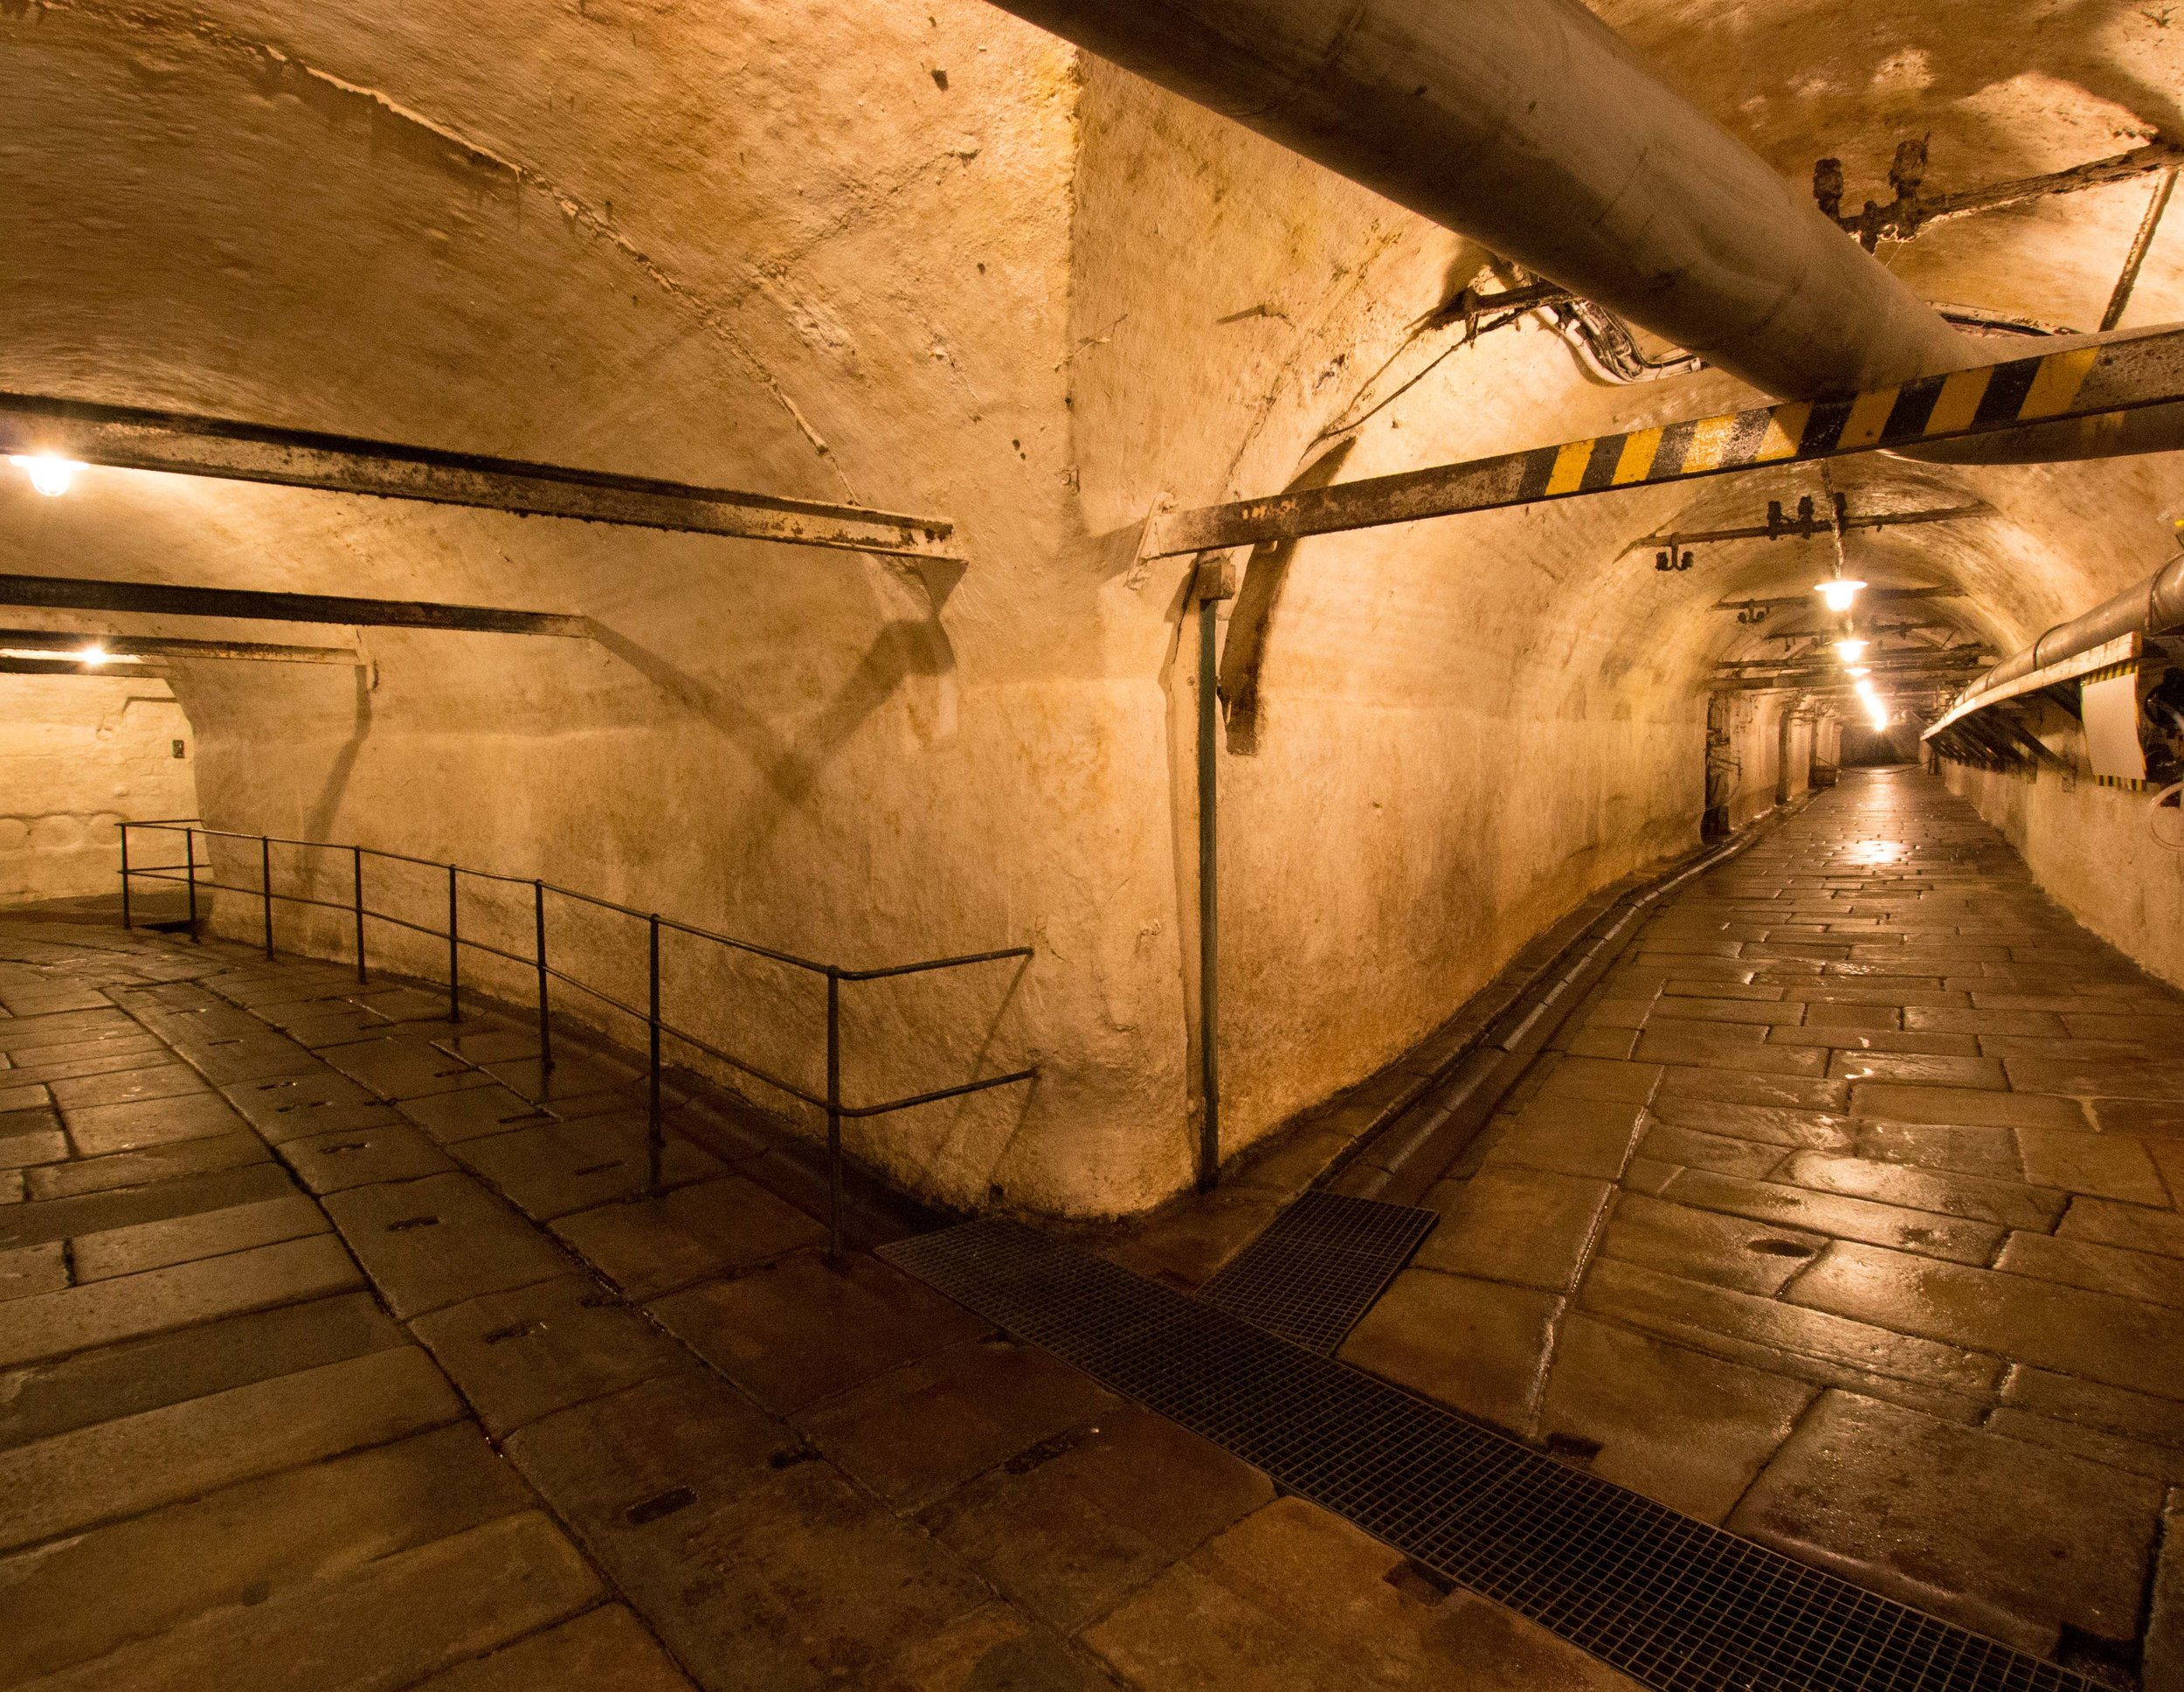 Tunnels under the Pilsner Urquell Brewery